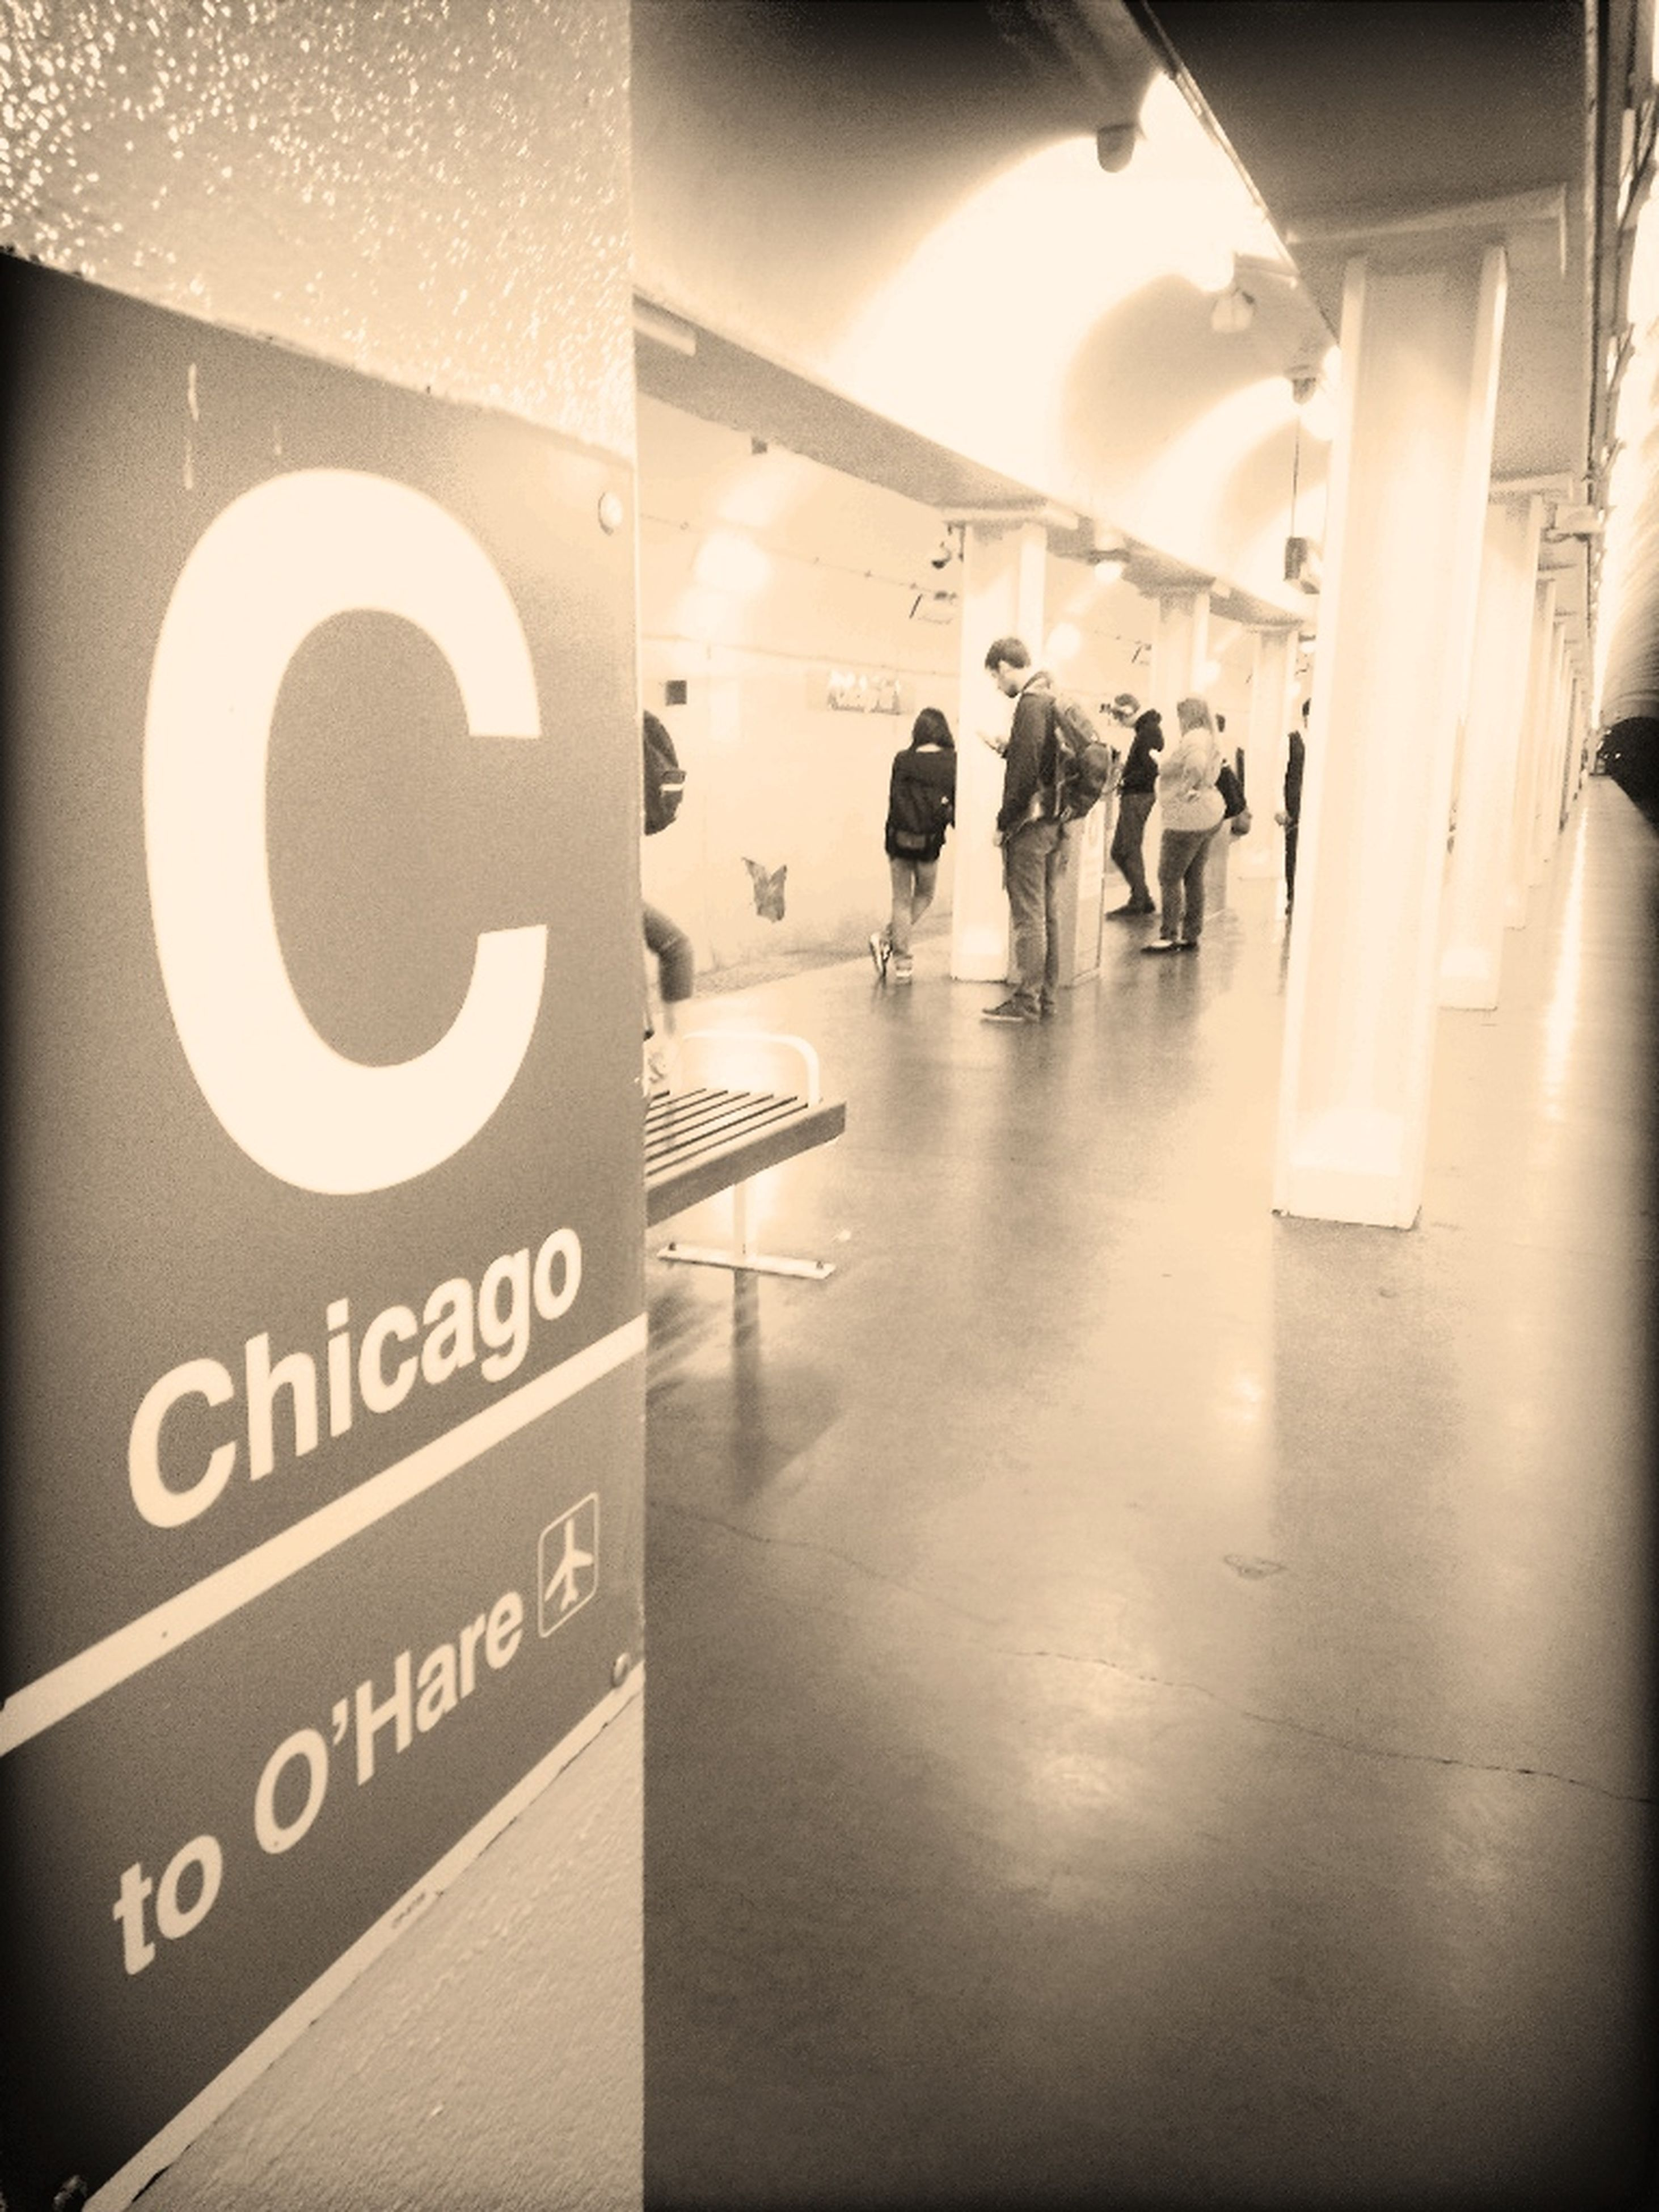 indoors, text, communication, western script, illuminated, information sign, built structure, architecture, sign, non-western script, subway station, number, guidance, arrow symbol, transportation, wall - building feature, reflection, capital letter, information, incidental people